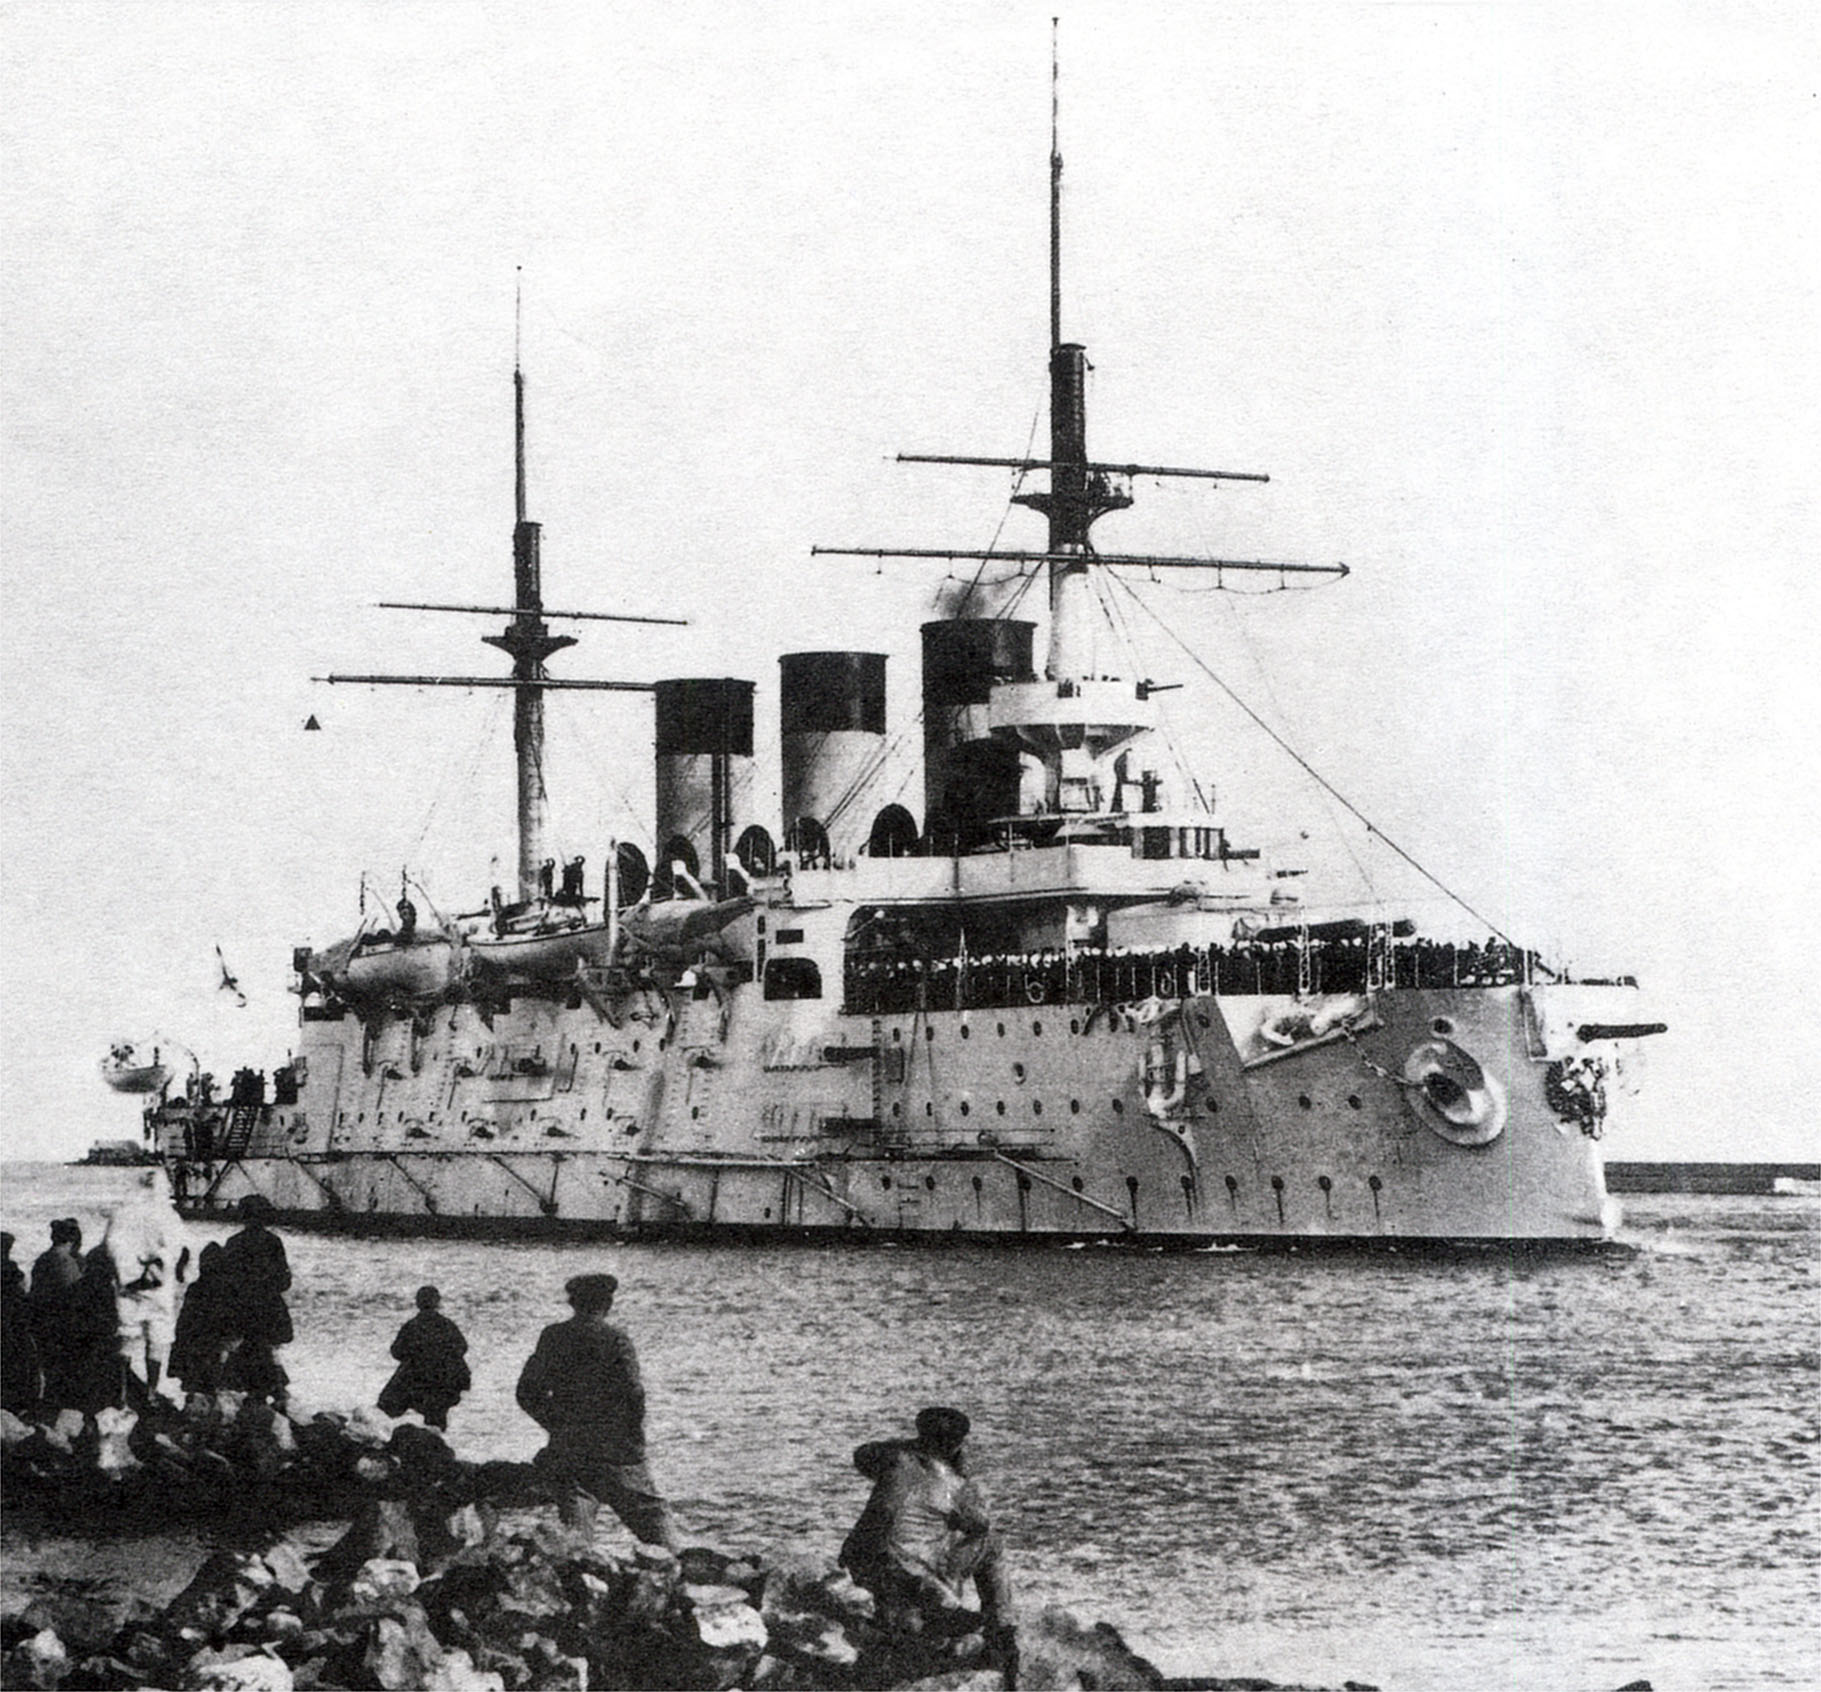 First ship sunk in the Battle of Tsushima on May 27, 1905 - Imperial Russian Ironclad warship Oslyabya, photographed at Bizerte, Tunisia, on December 27, 1903.